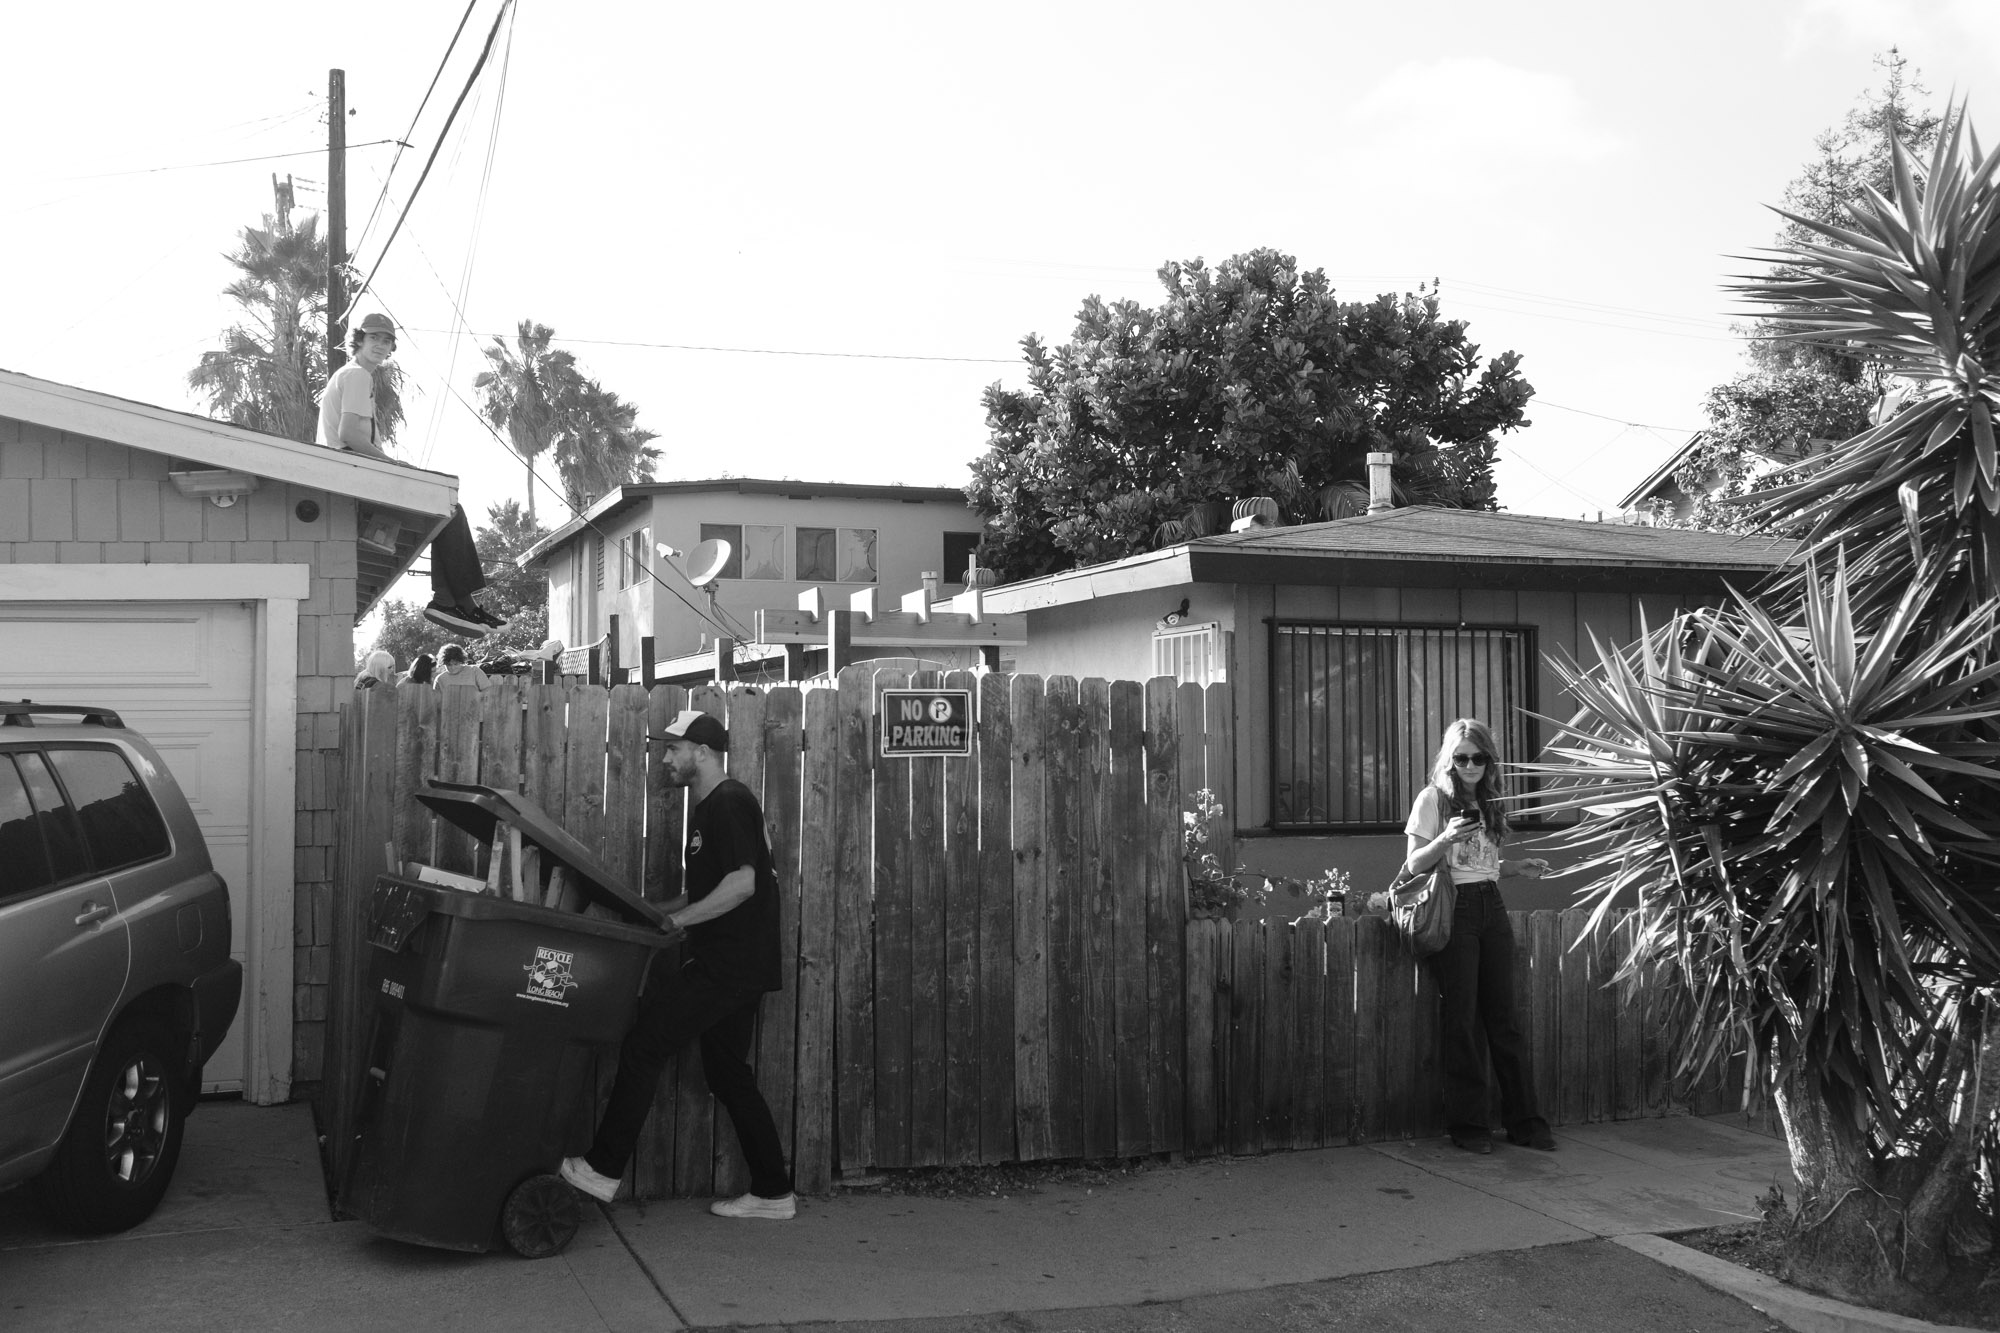 Cory moving a trash can near his fence